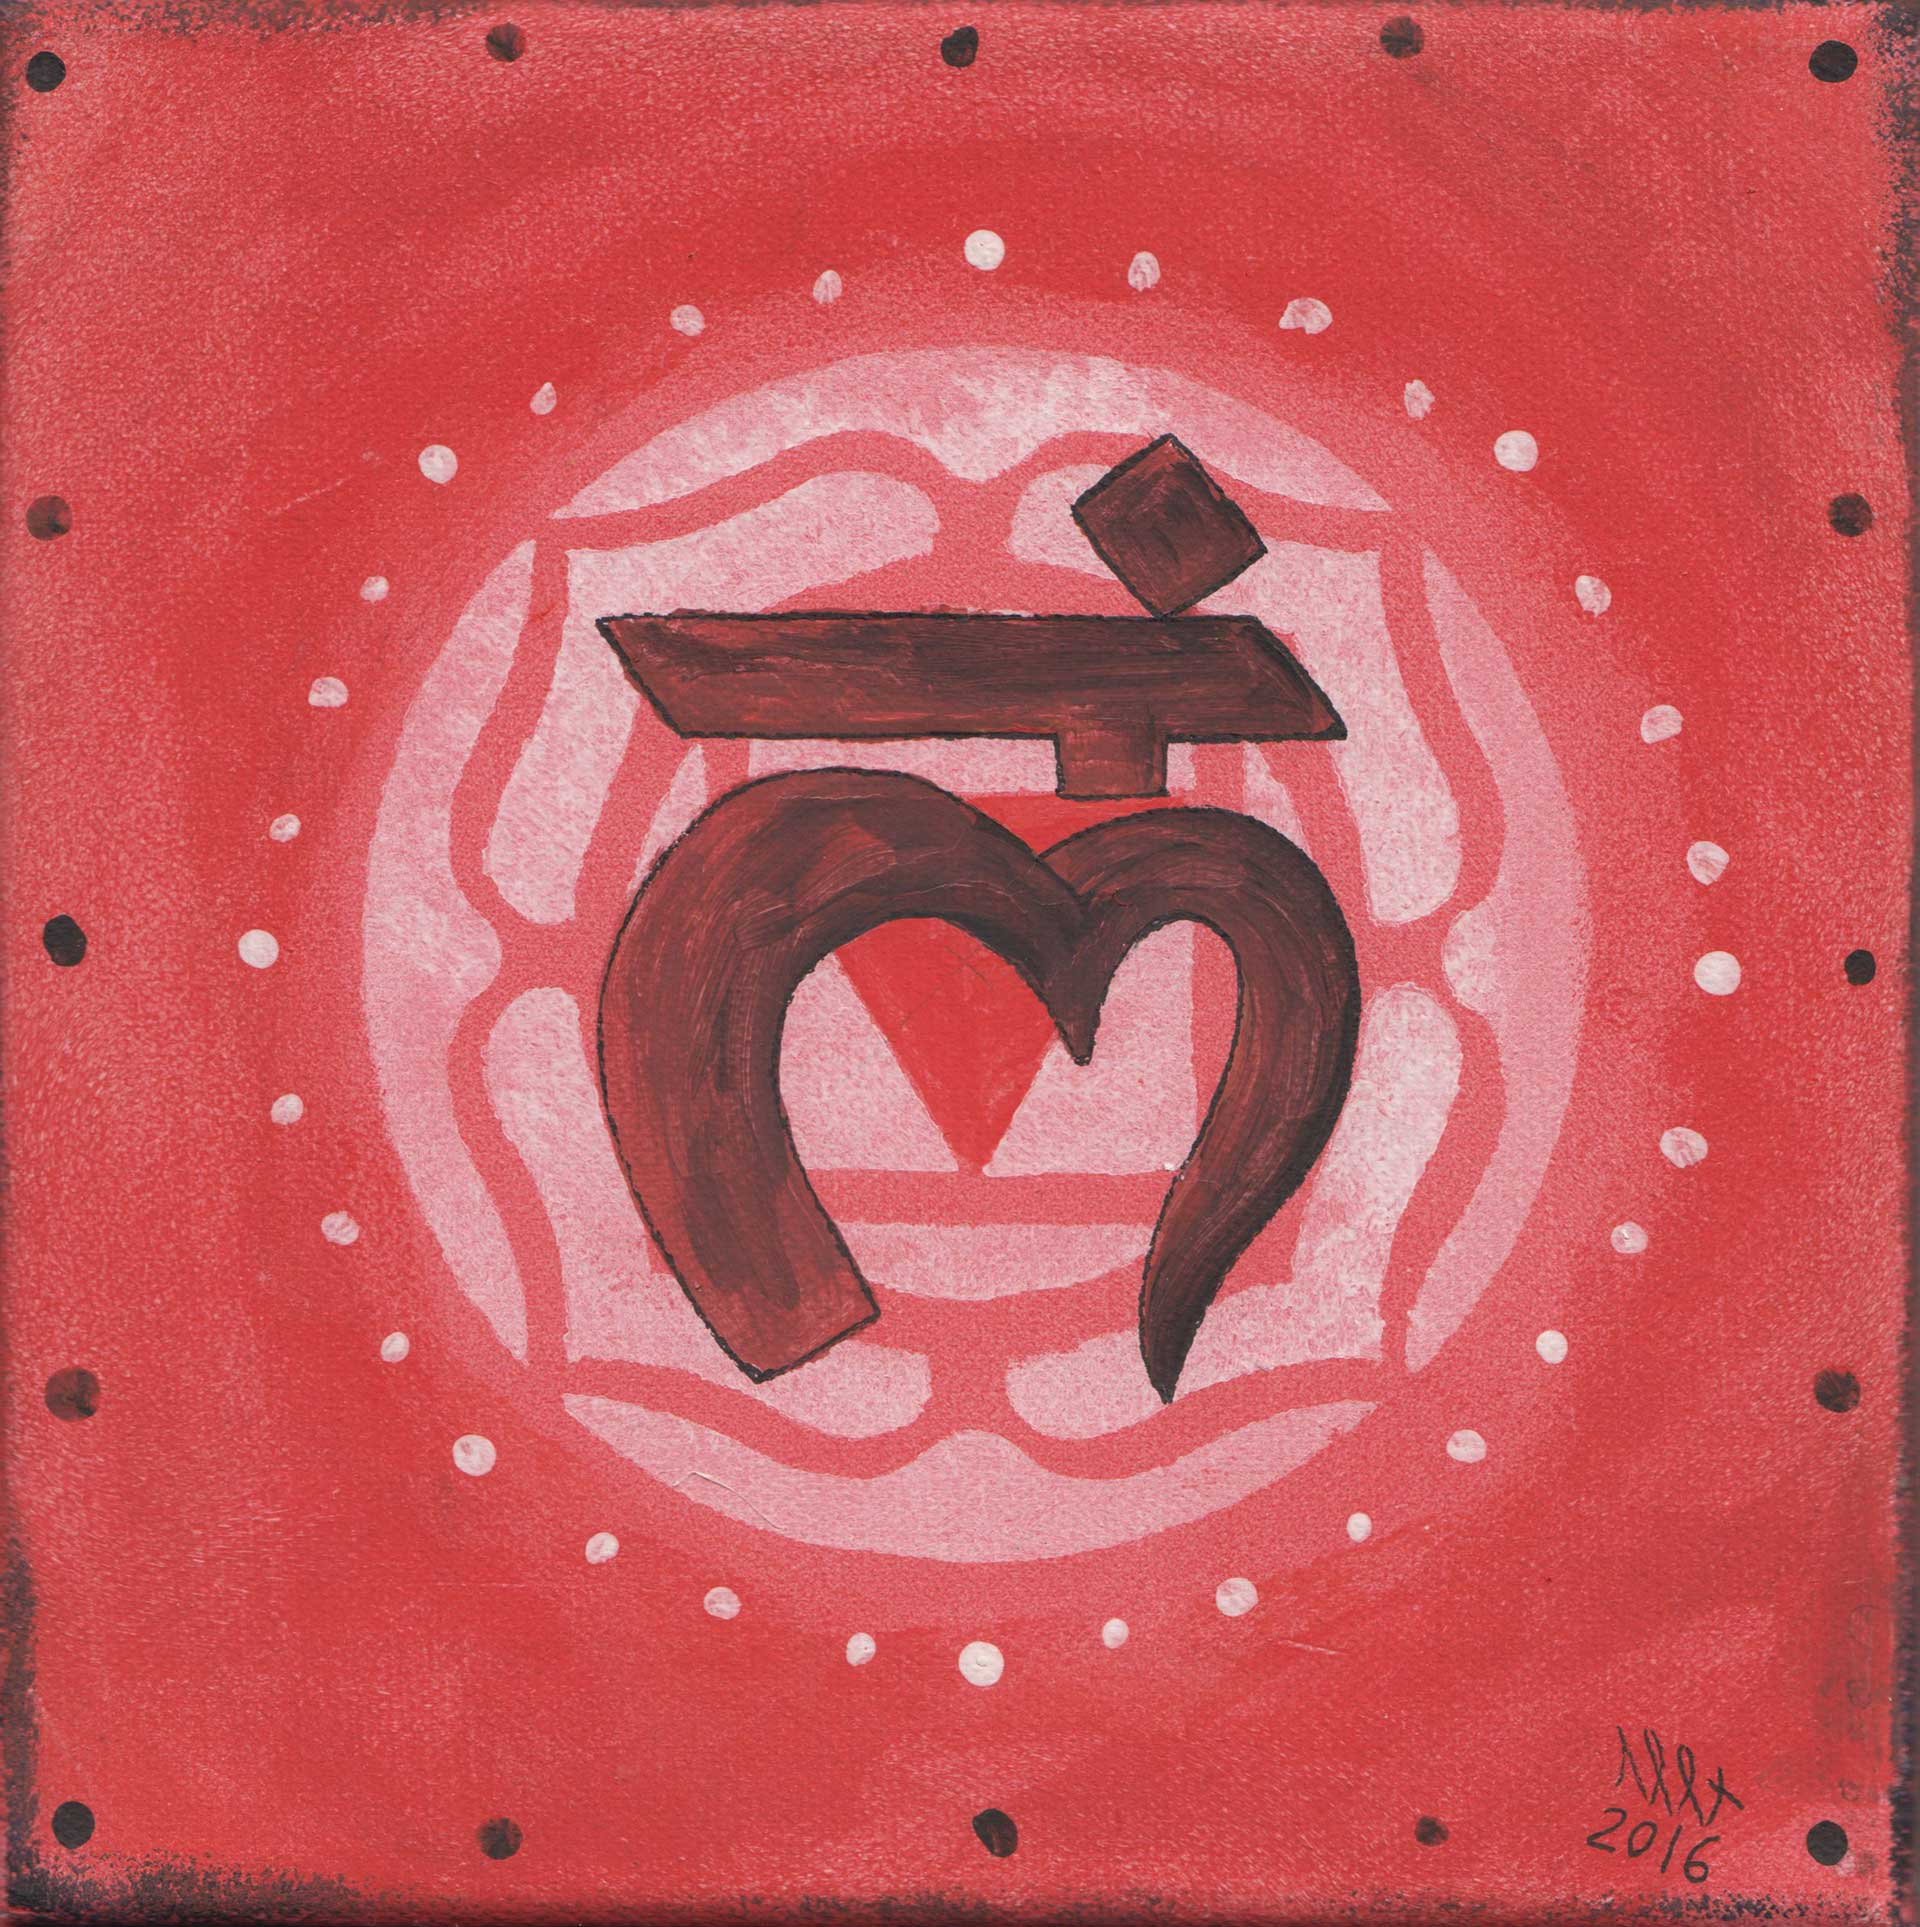 Root Chakra 02 painting by Alessandro Bruno. 2016, Egg tempera on canvas, 20cm by 20cm.